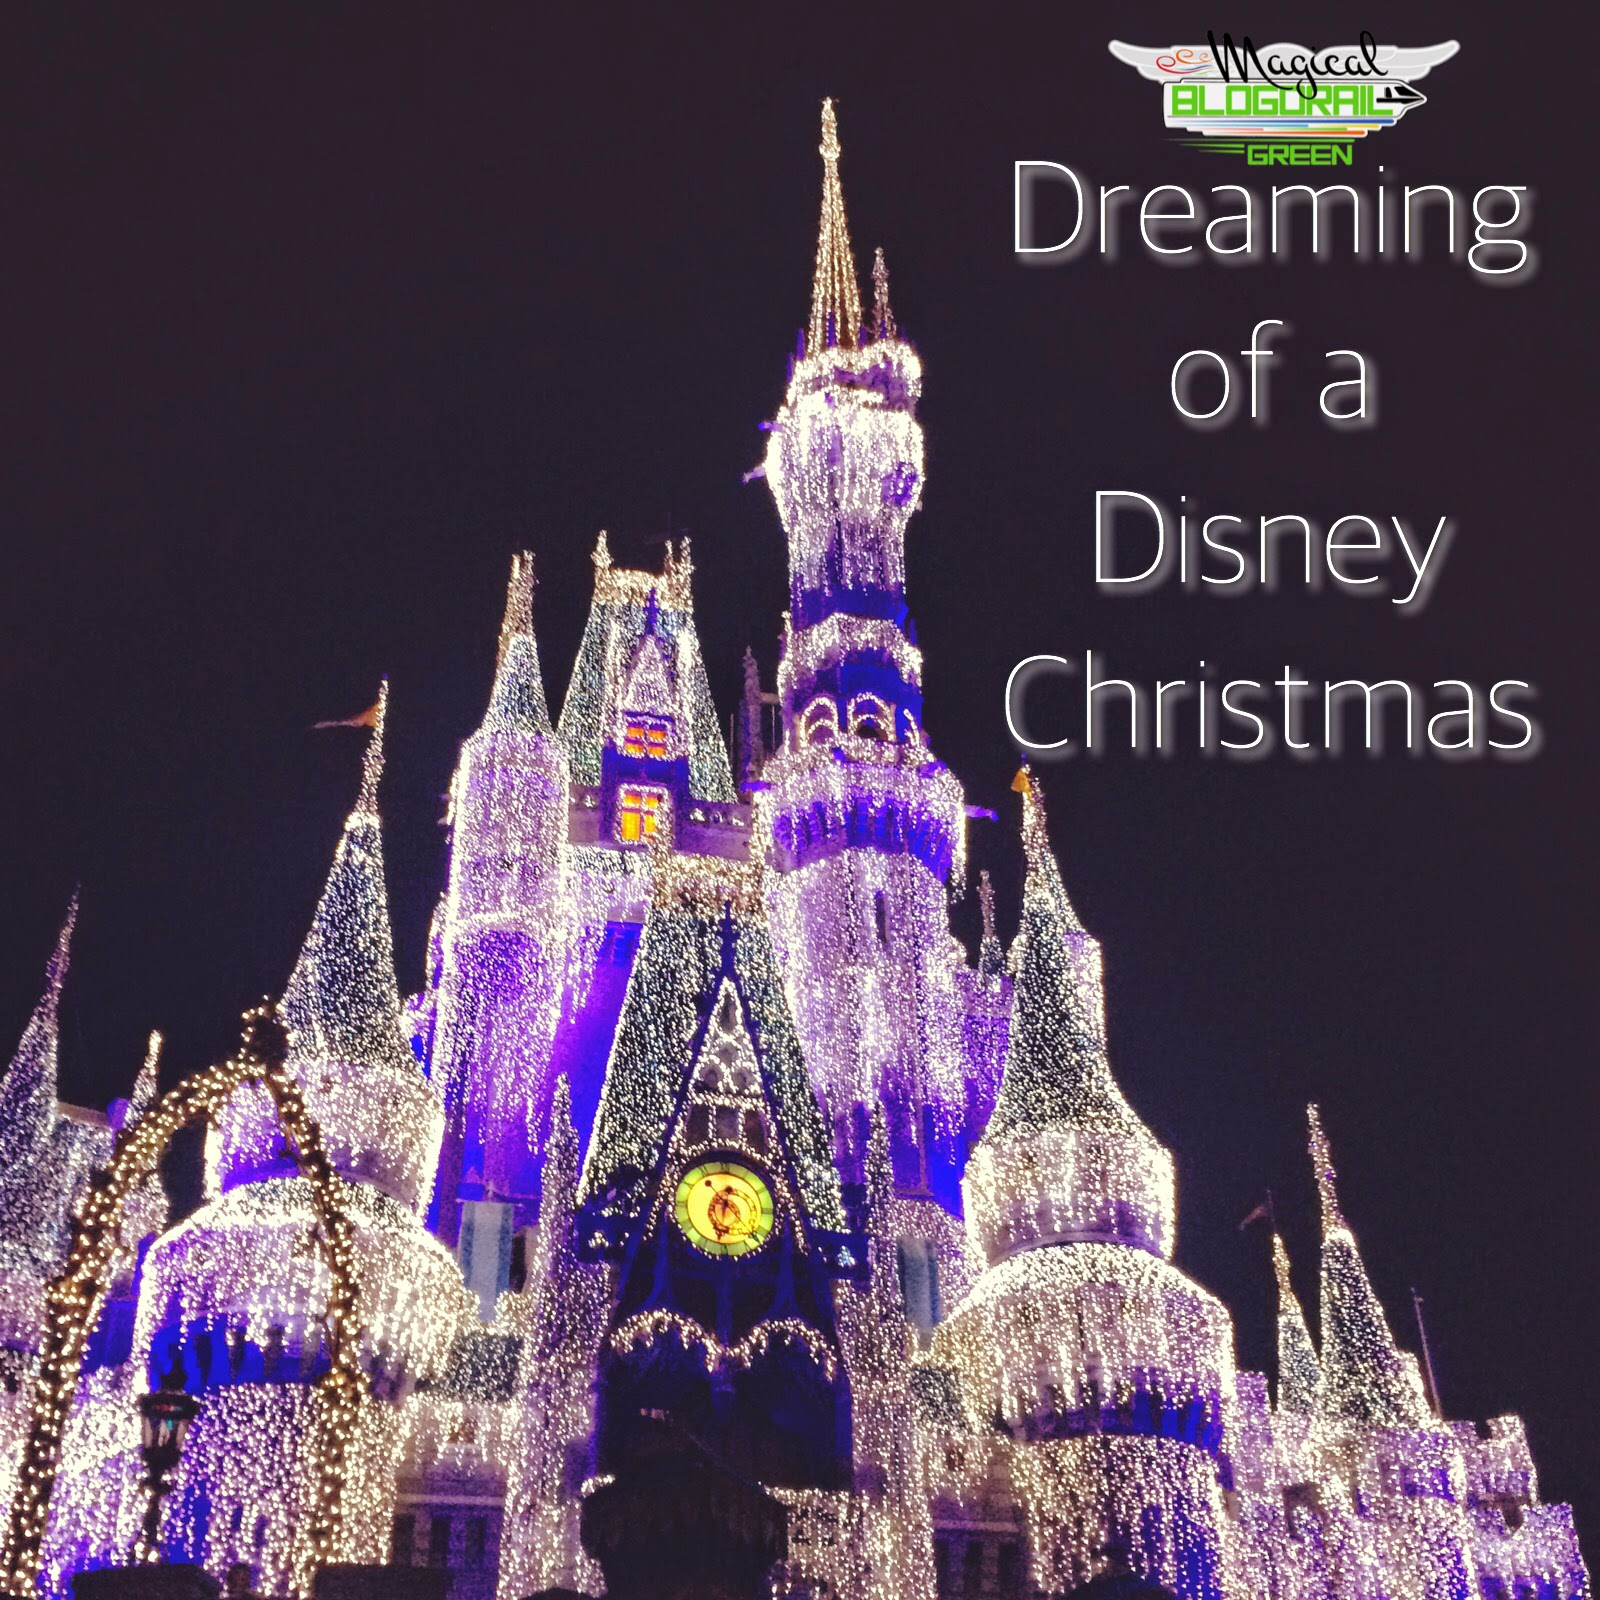 Dreaming of a Disney Christmas with Magical Blogorail Green